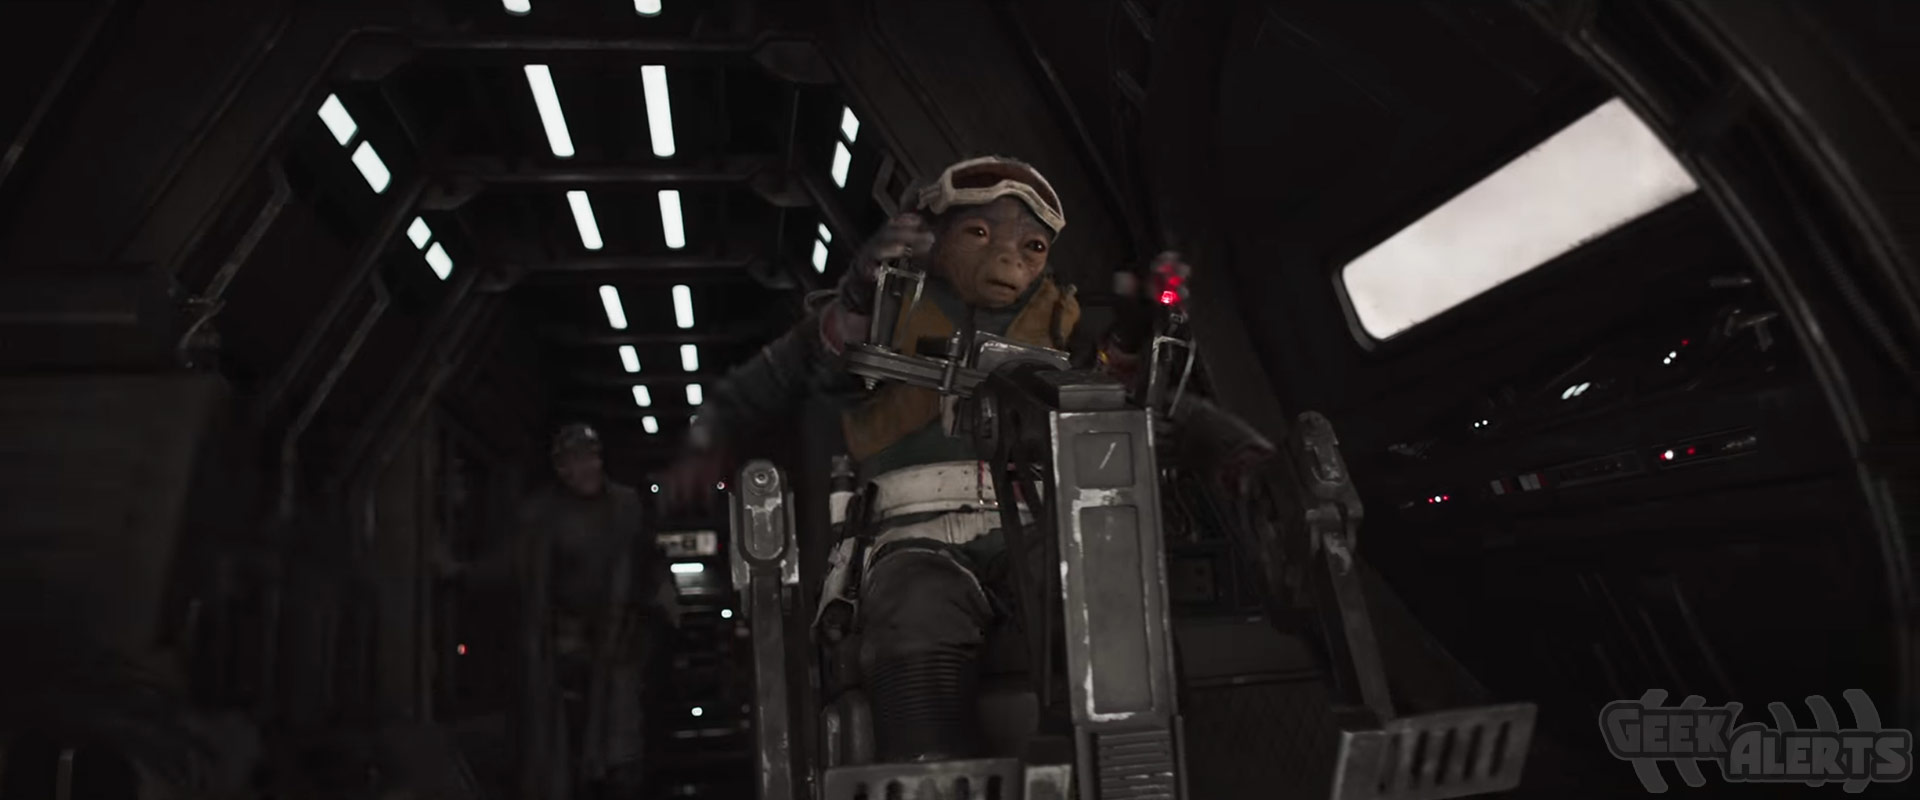 Solo: A Star Wars Story Official Teaser Trailer - photo#35